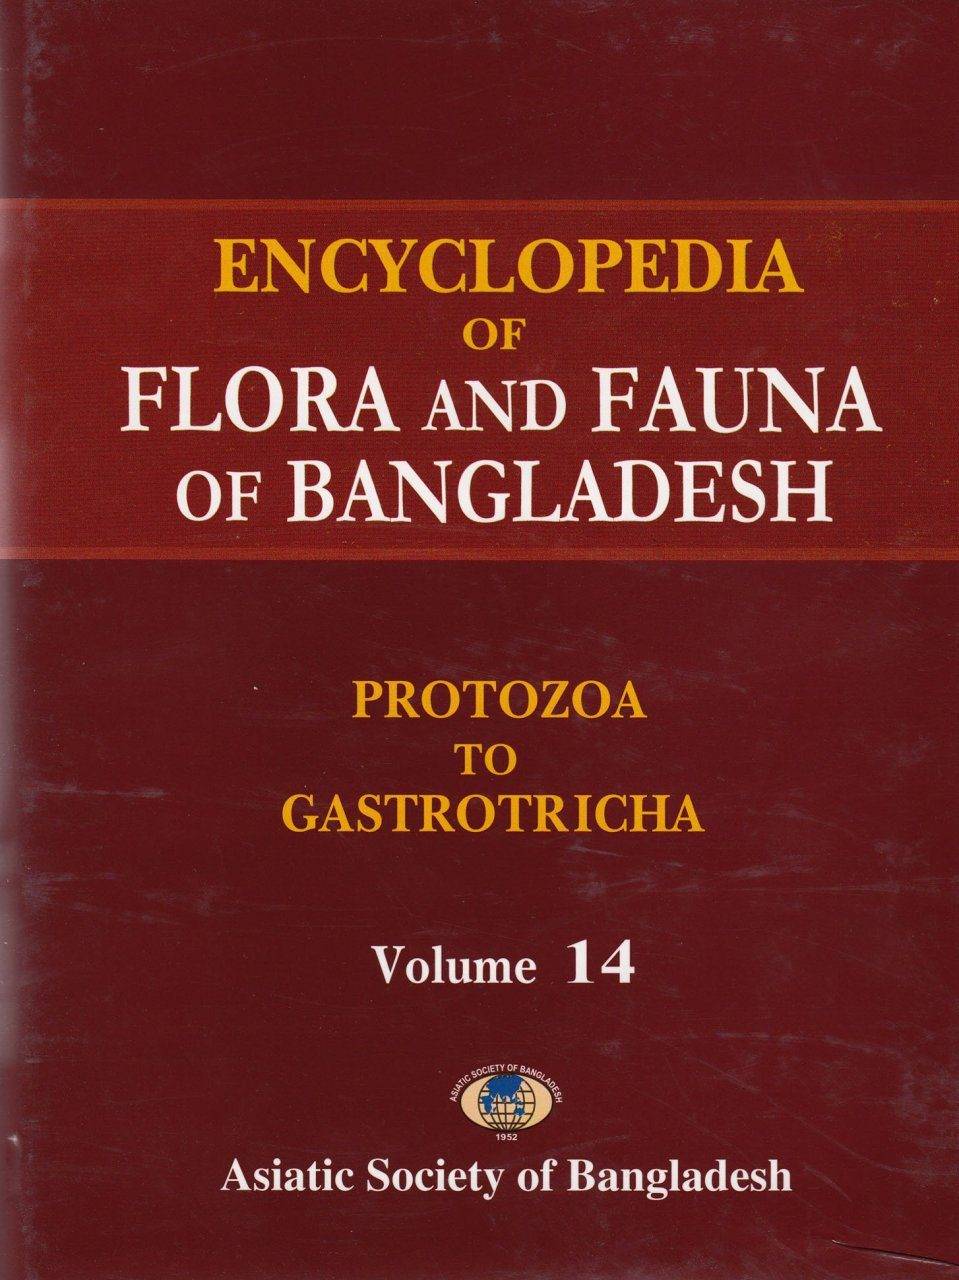 Encyclopedia of Flora and Fauna of Bangladesh, Volume 14: Protozoa to Gastrotricha